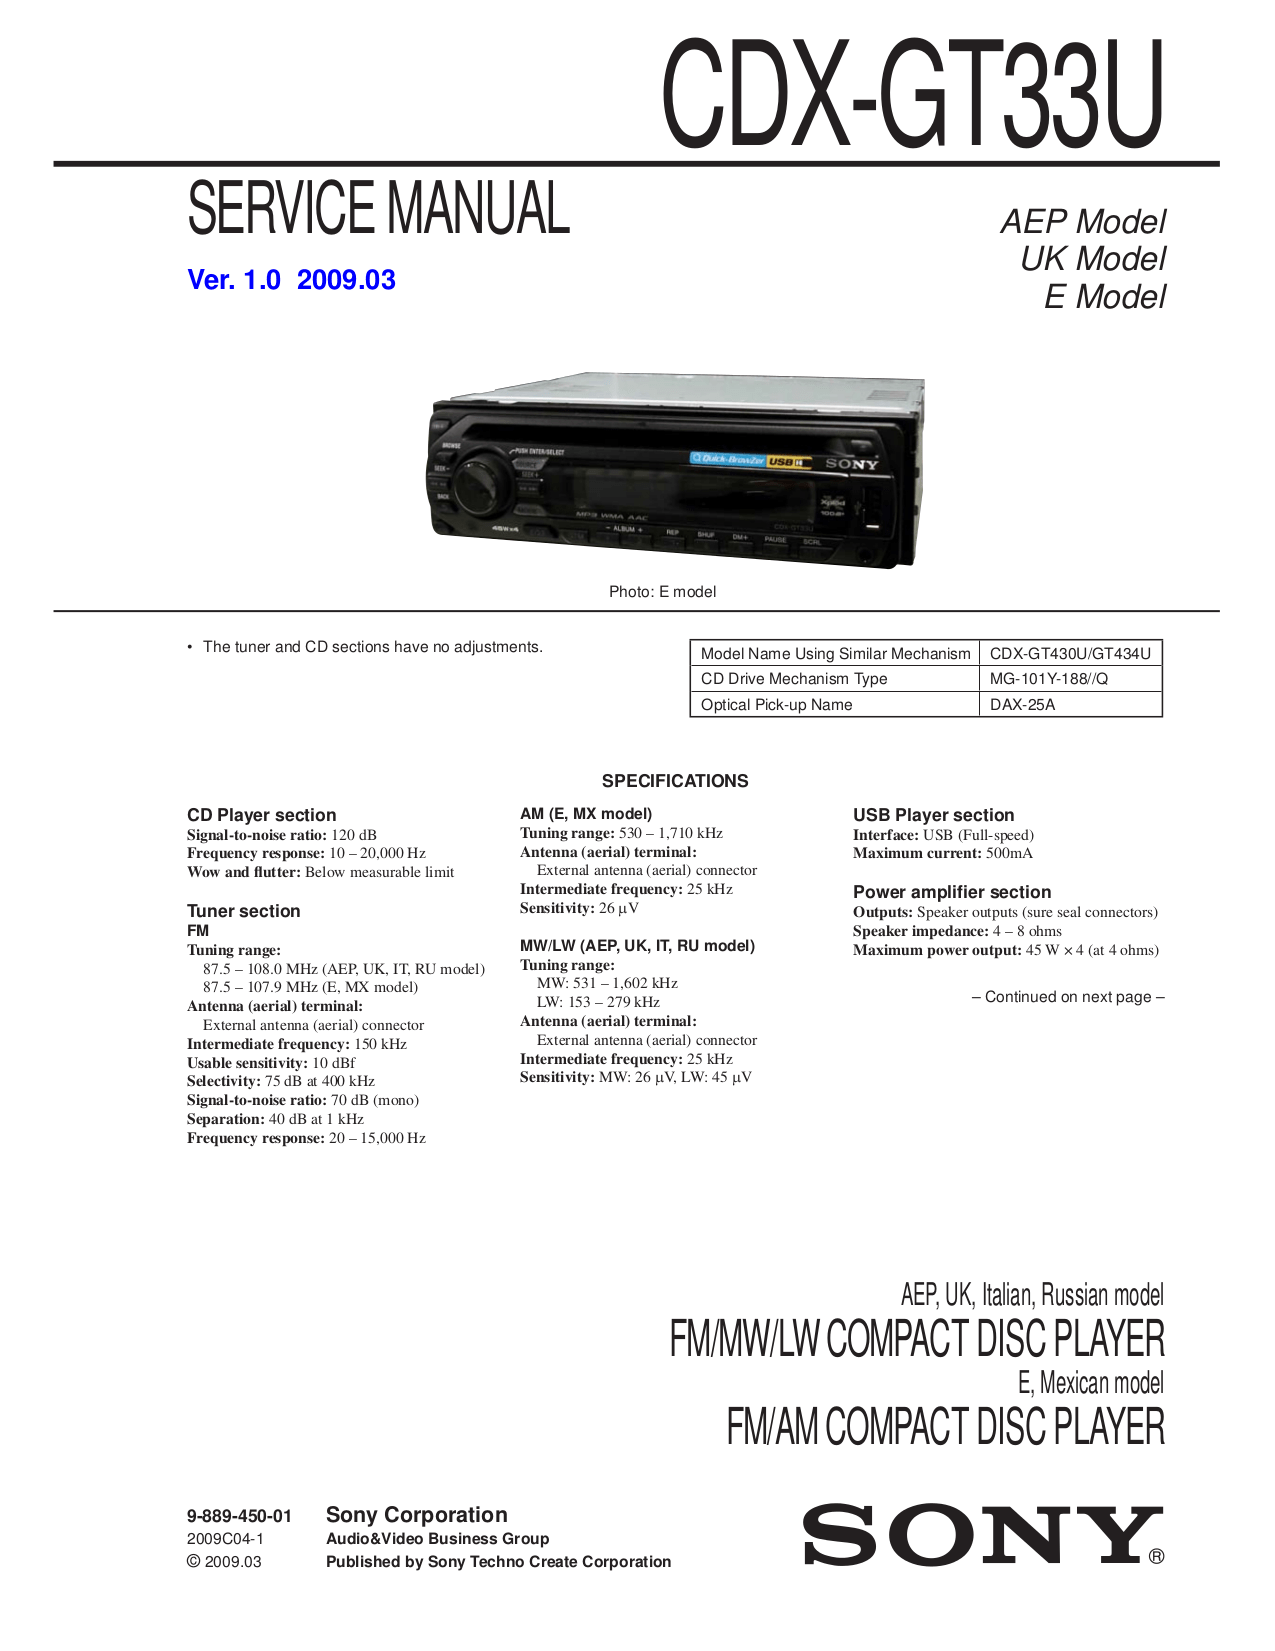 sony_cdx gt33u_ver 1.0_sm.pdf 0 sony cdx s2010 wiring diagram efcaviation com sony cdx s2000 wiring diagram at gsmportal.co